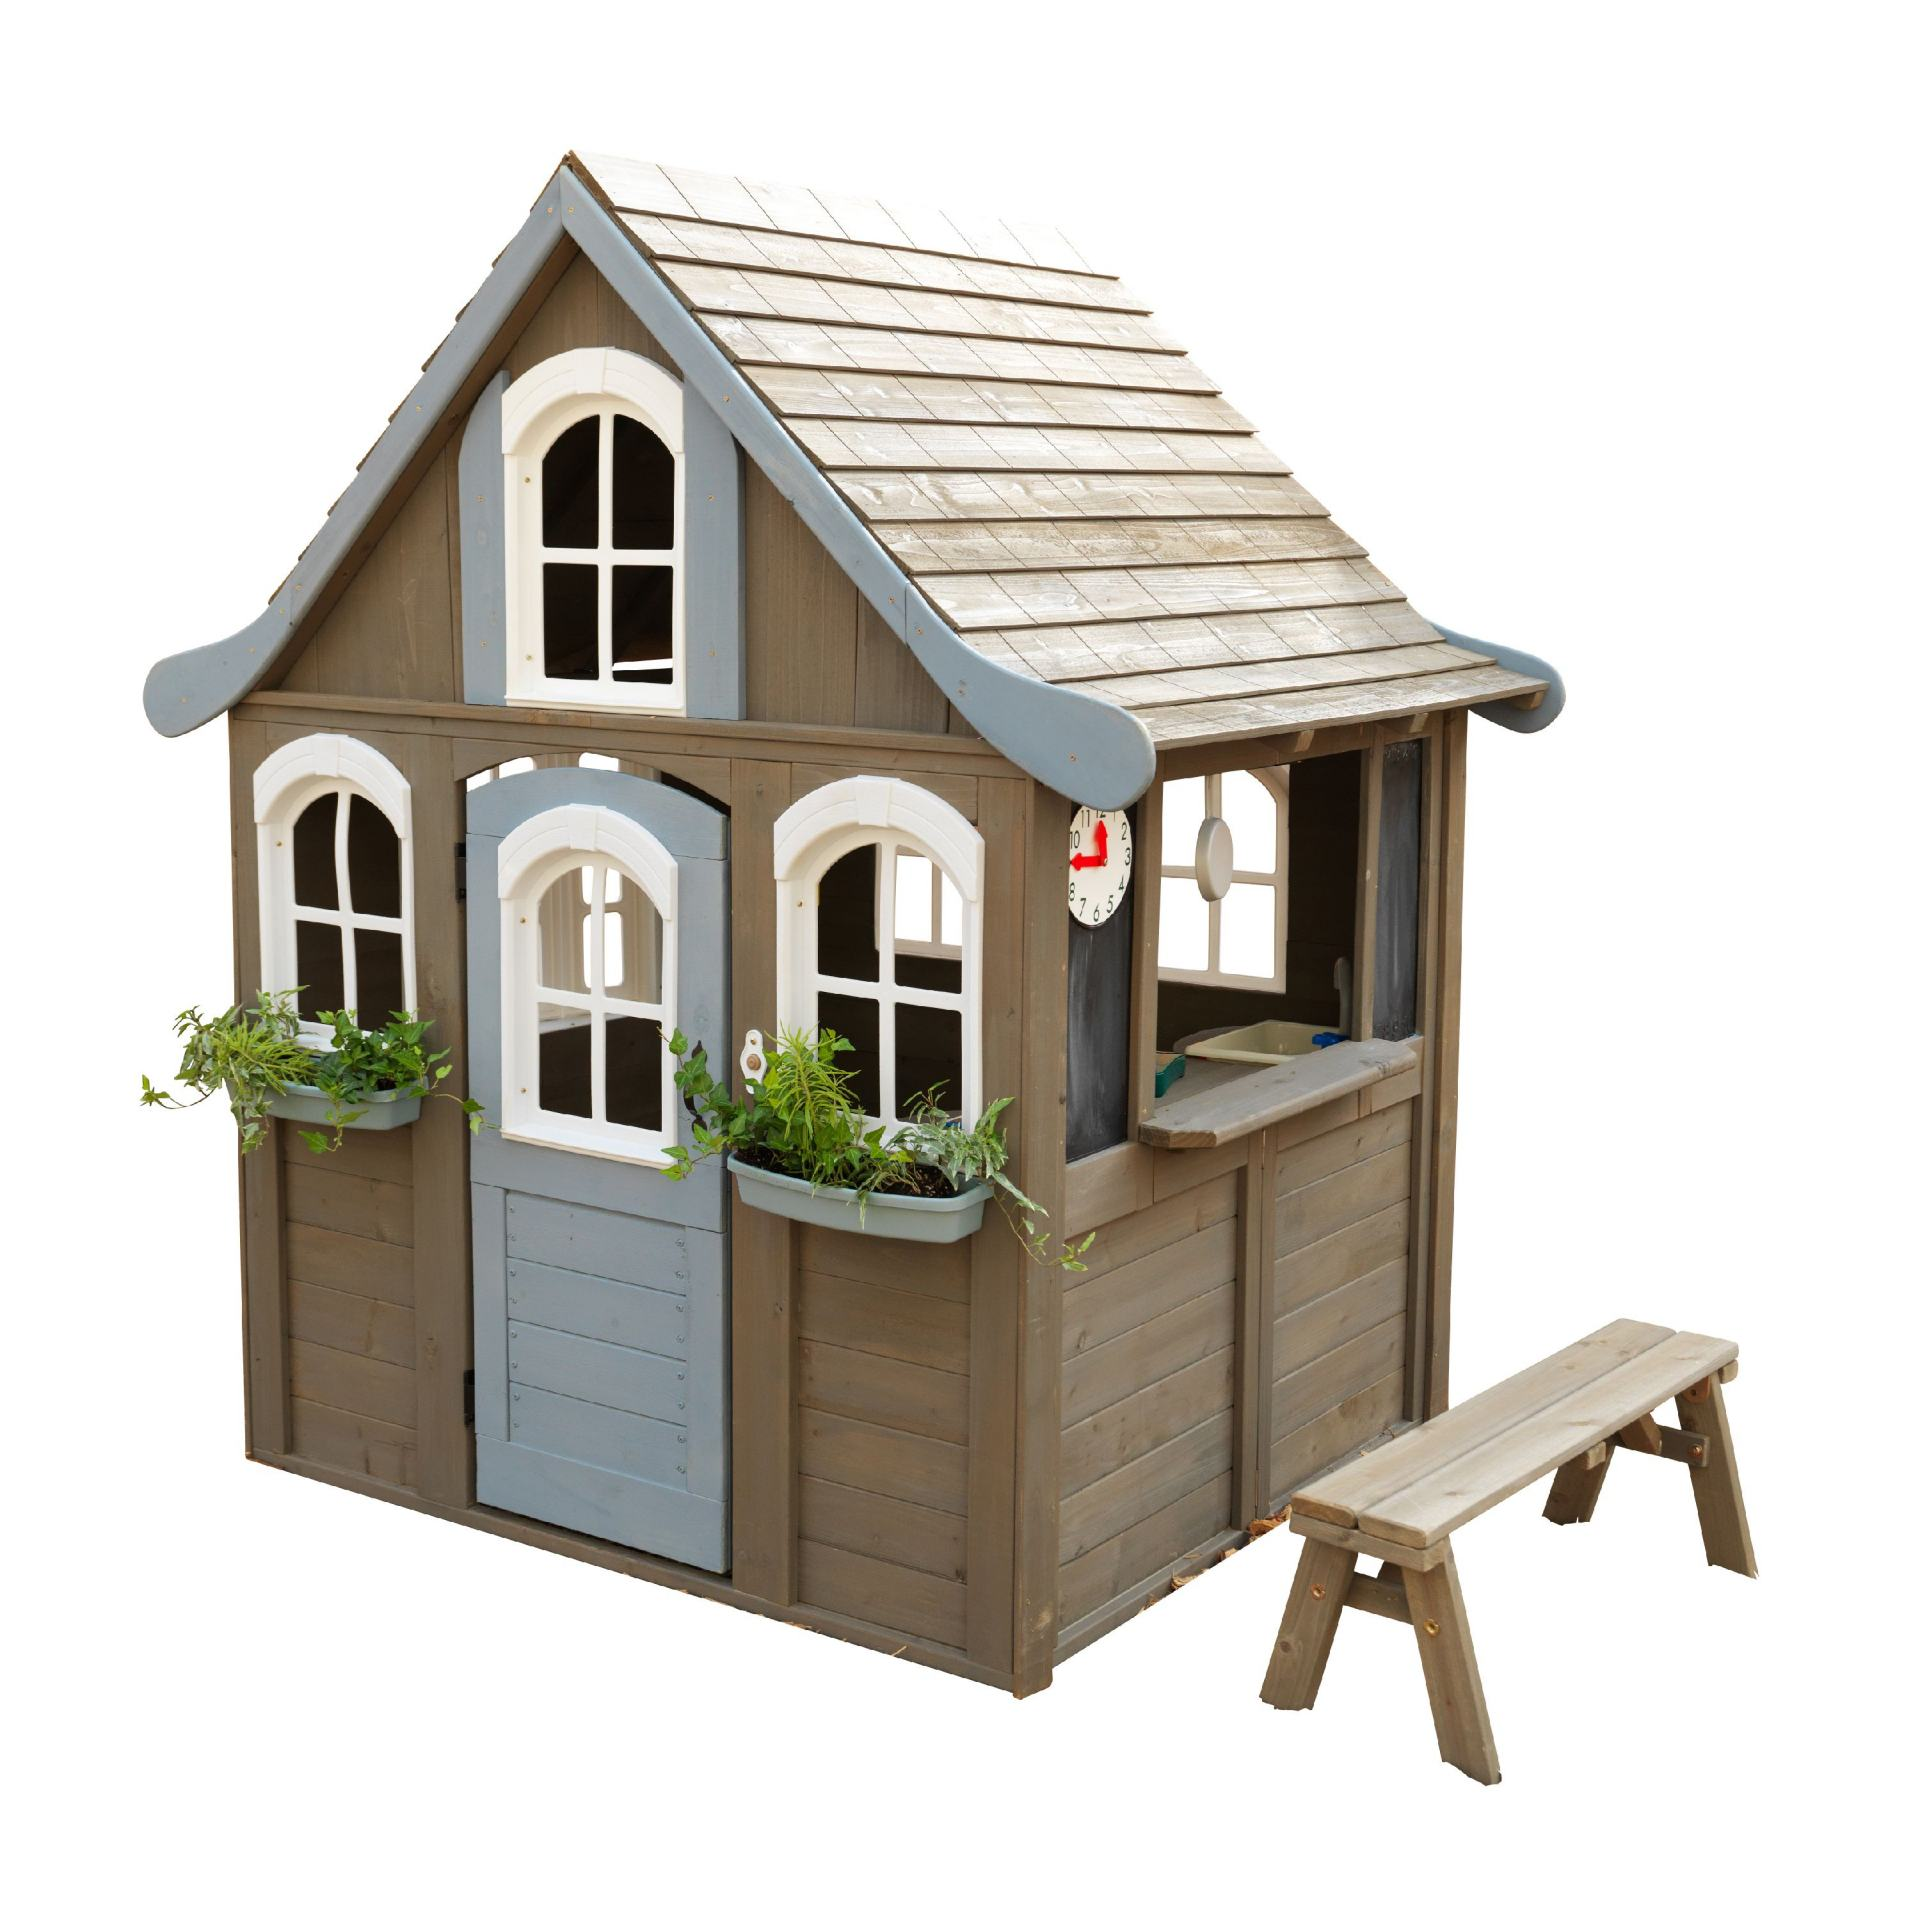 cute kids playhouse with blue accents